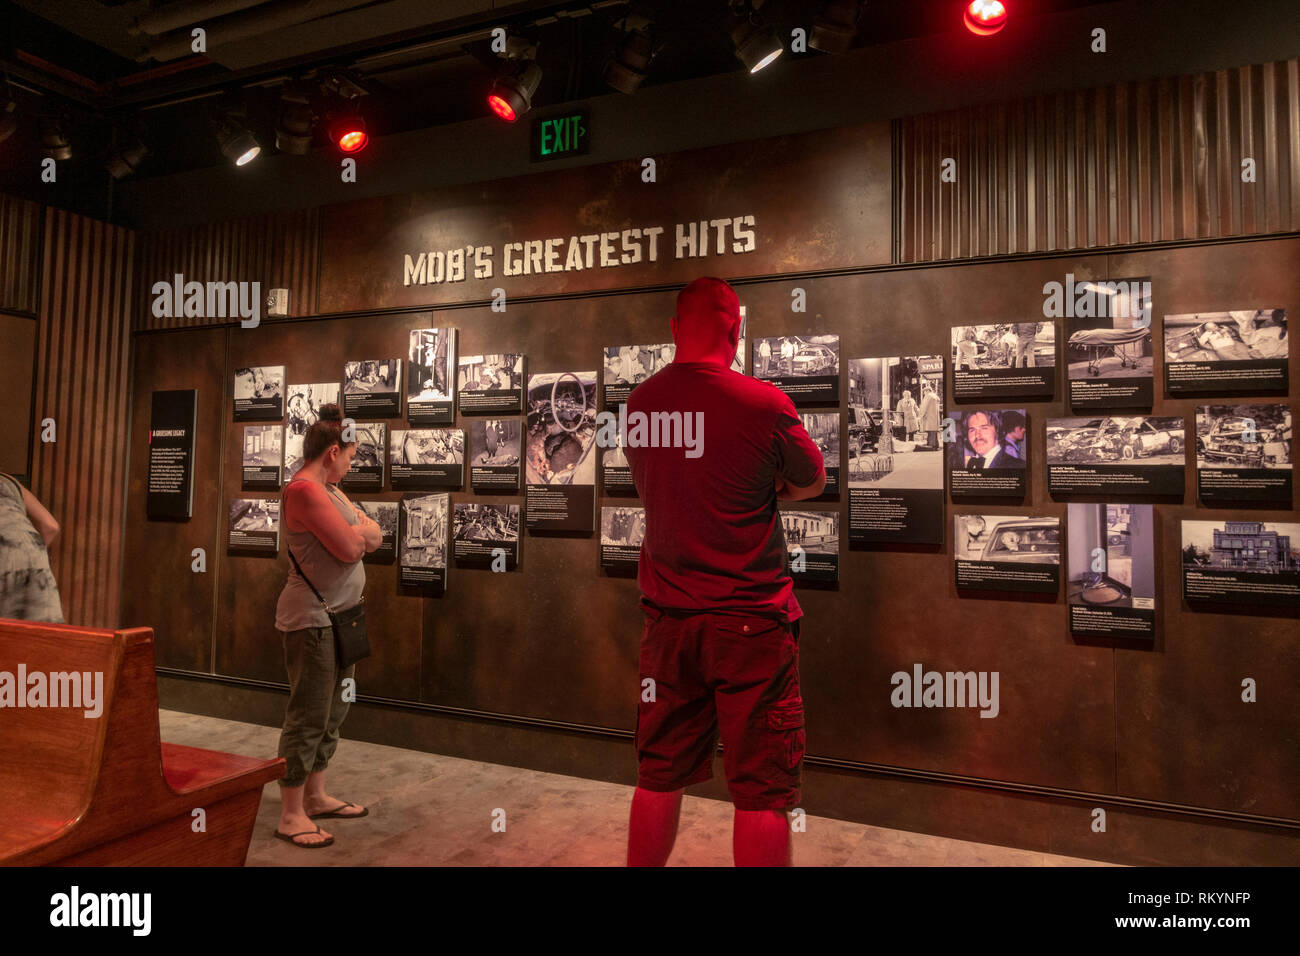 Photo wall of Police photos of Mob victims, The Mob Museum, Las Vegas (City of Las Vegas), Nevada, United States. - Stock Image